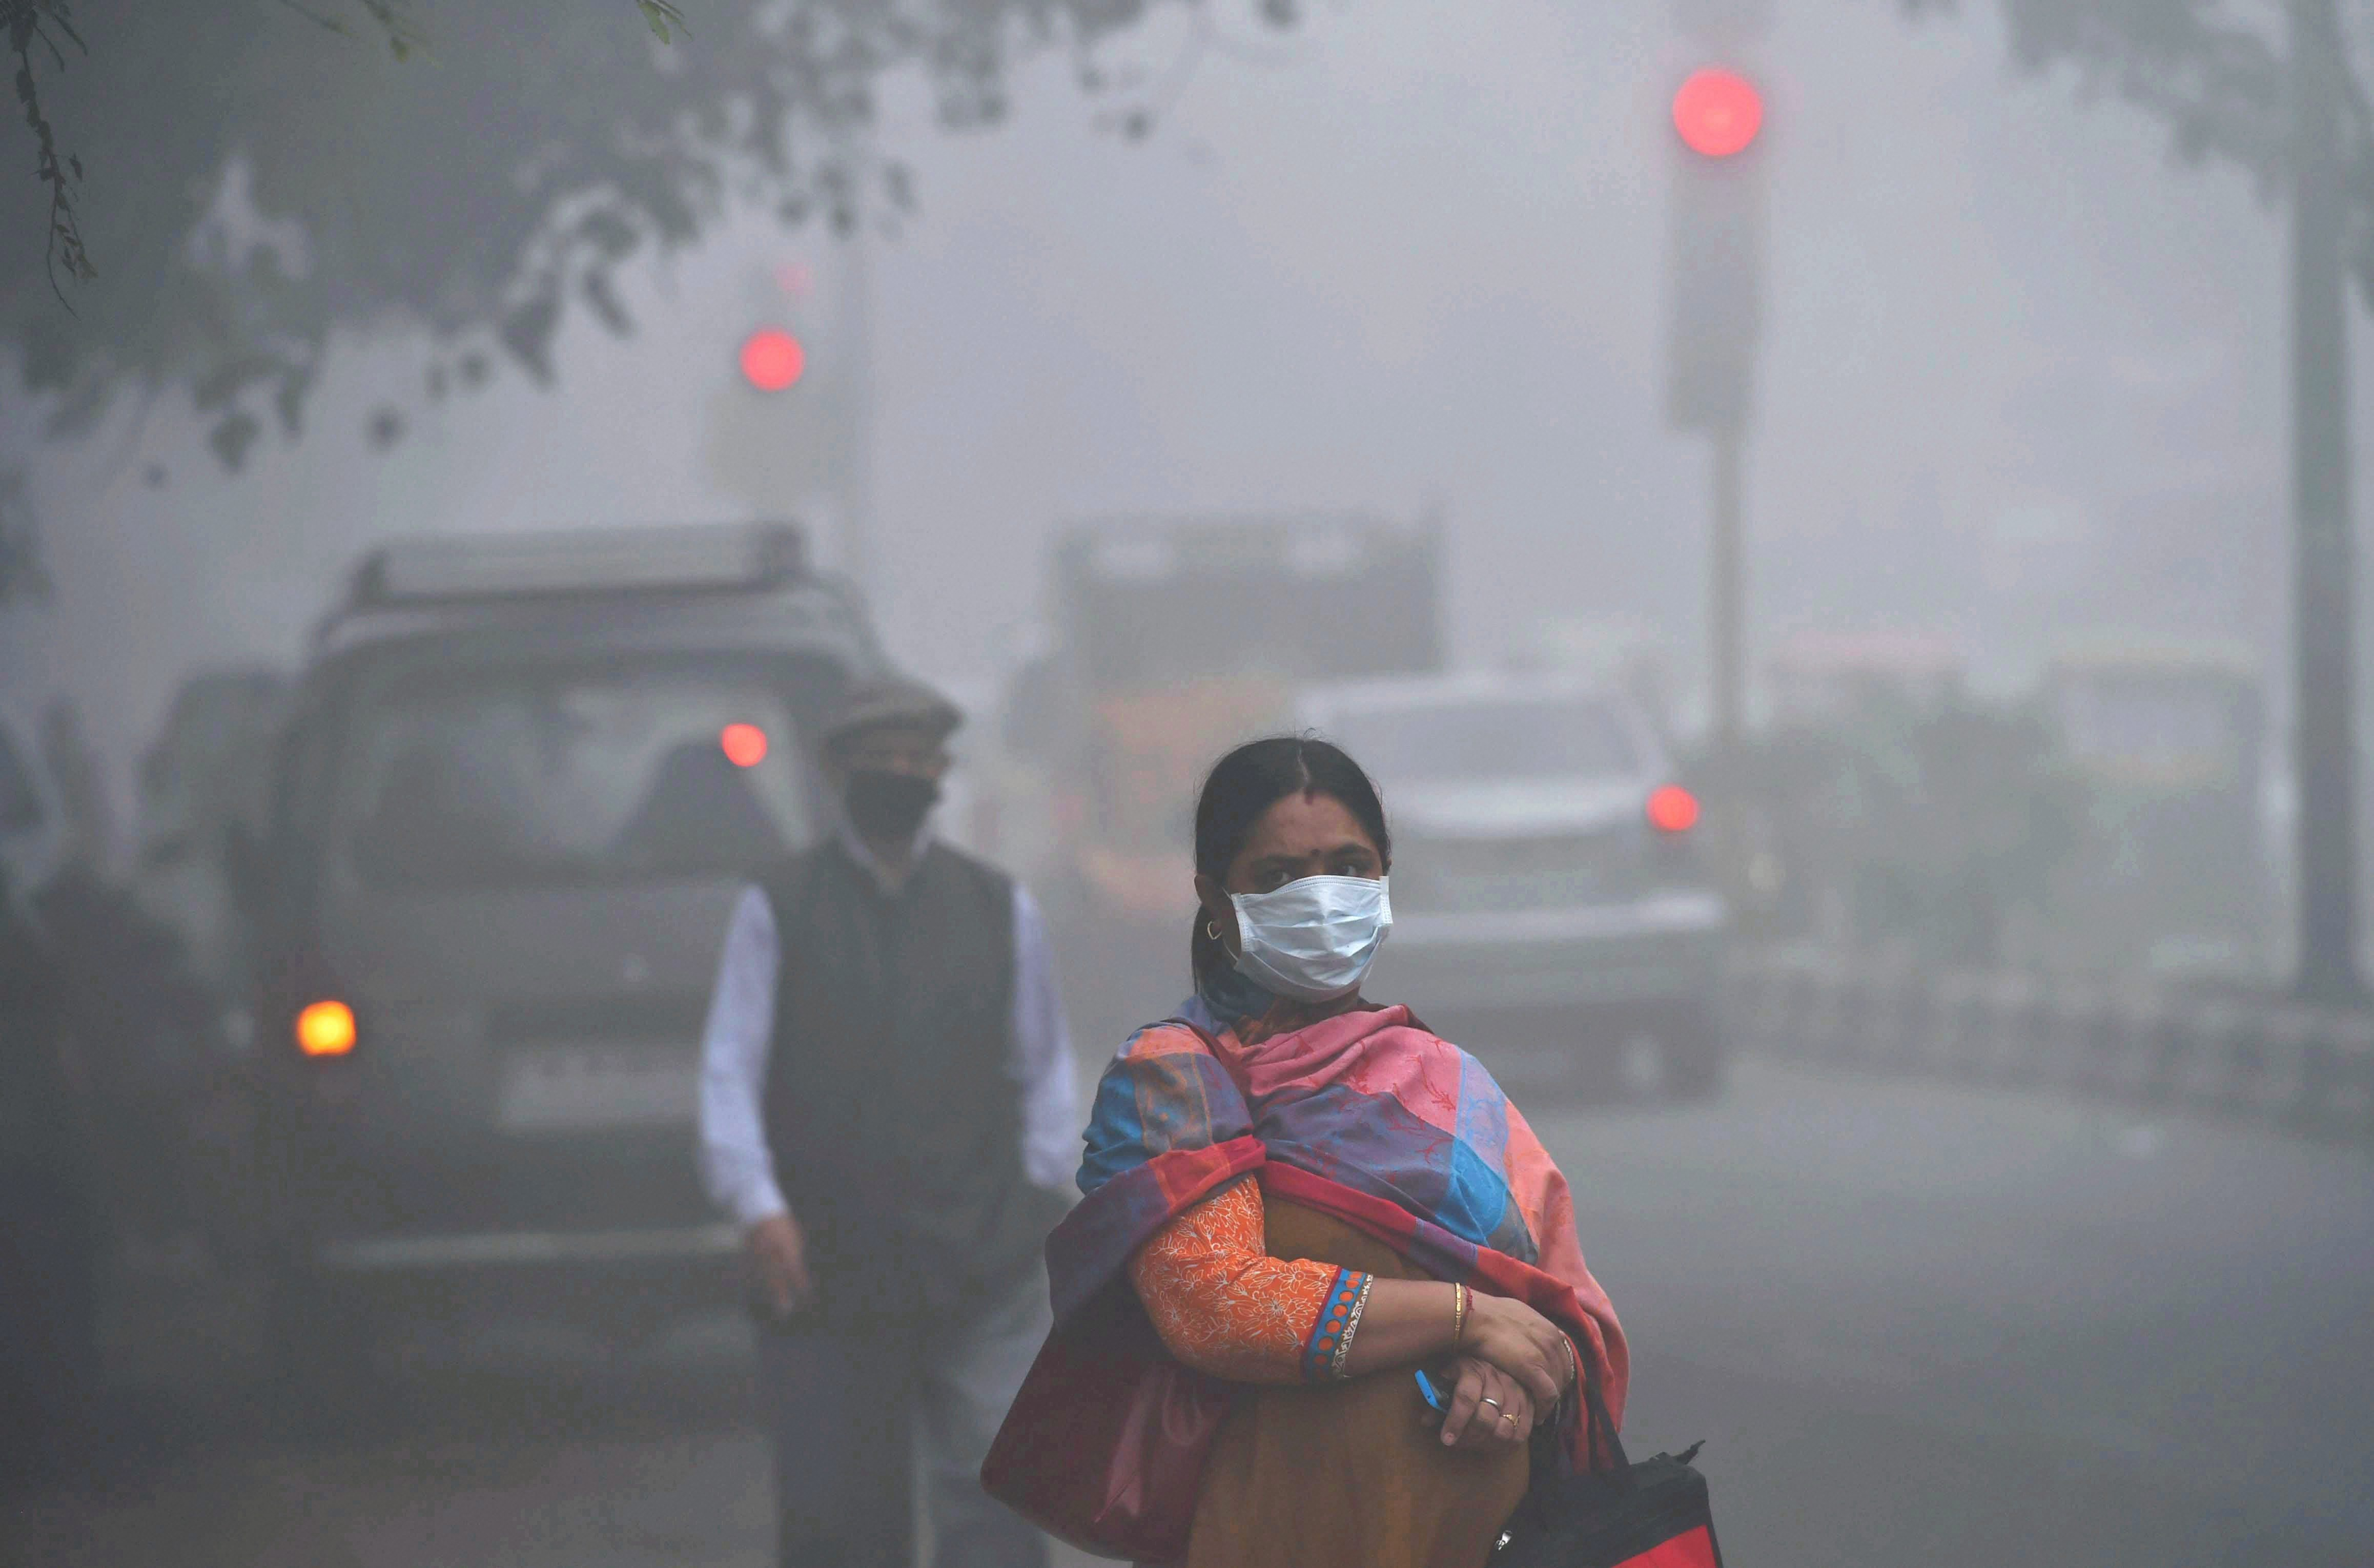 New Delhi: A woman wears an anti-pollution mask as smog covers the capital's skyline on Wednesday. Yesterday the air quality hit severe levels in New Delhi. PTI Photo by Shahbaz Khan(PTI11_8_2017_000013A)